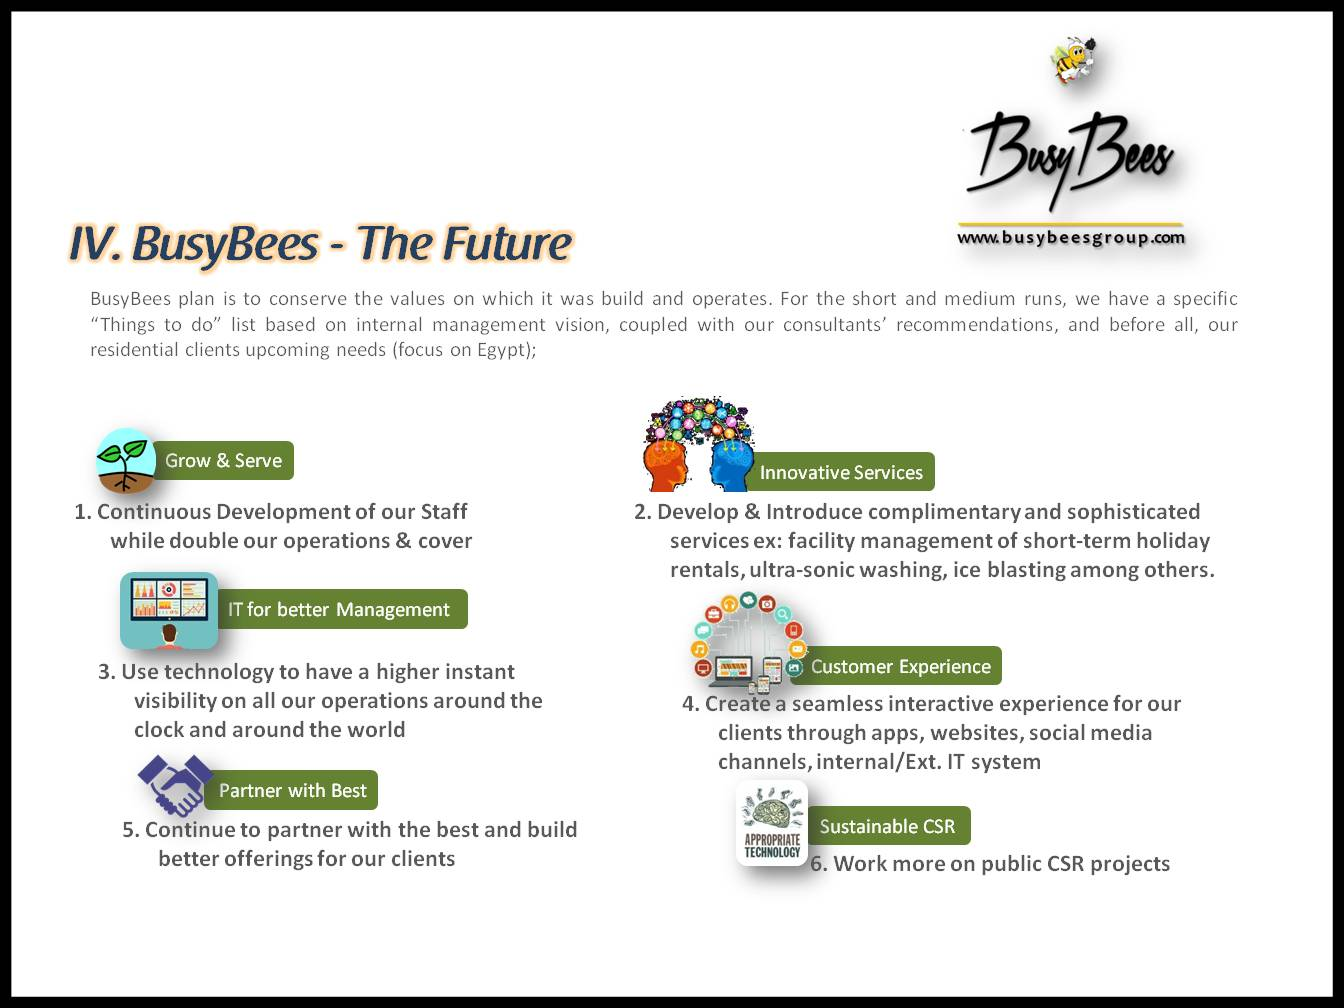 BusyBees Dubai Cleaning And Maintenance Services - A Customer Oriented  Household Cleaning Services Company 6